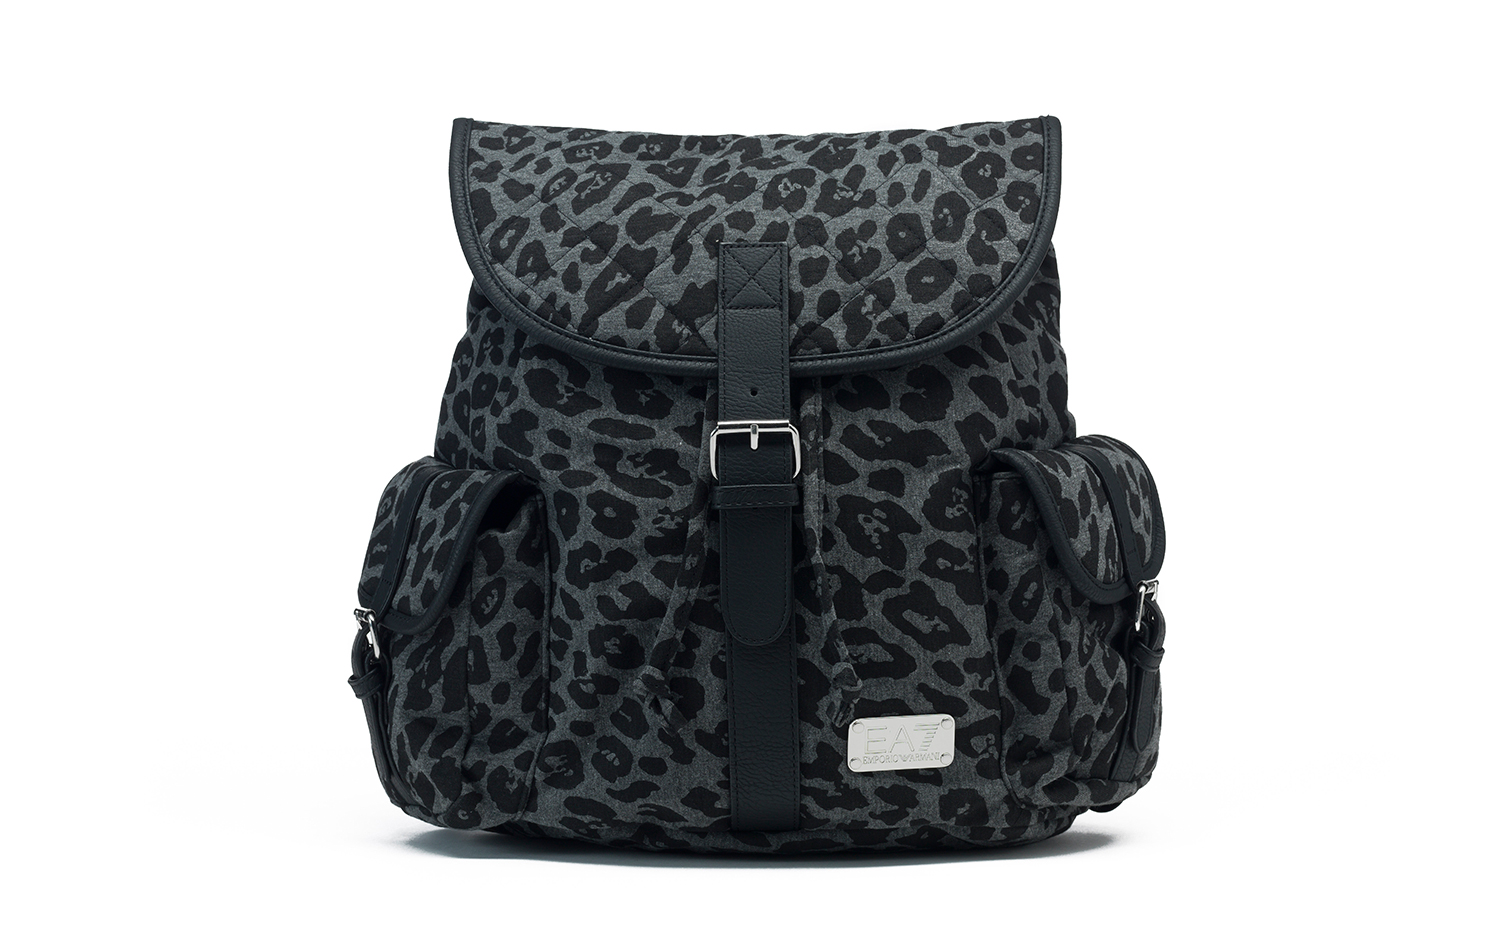 EA7 GYM LUX animal printed backpack black